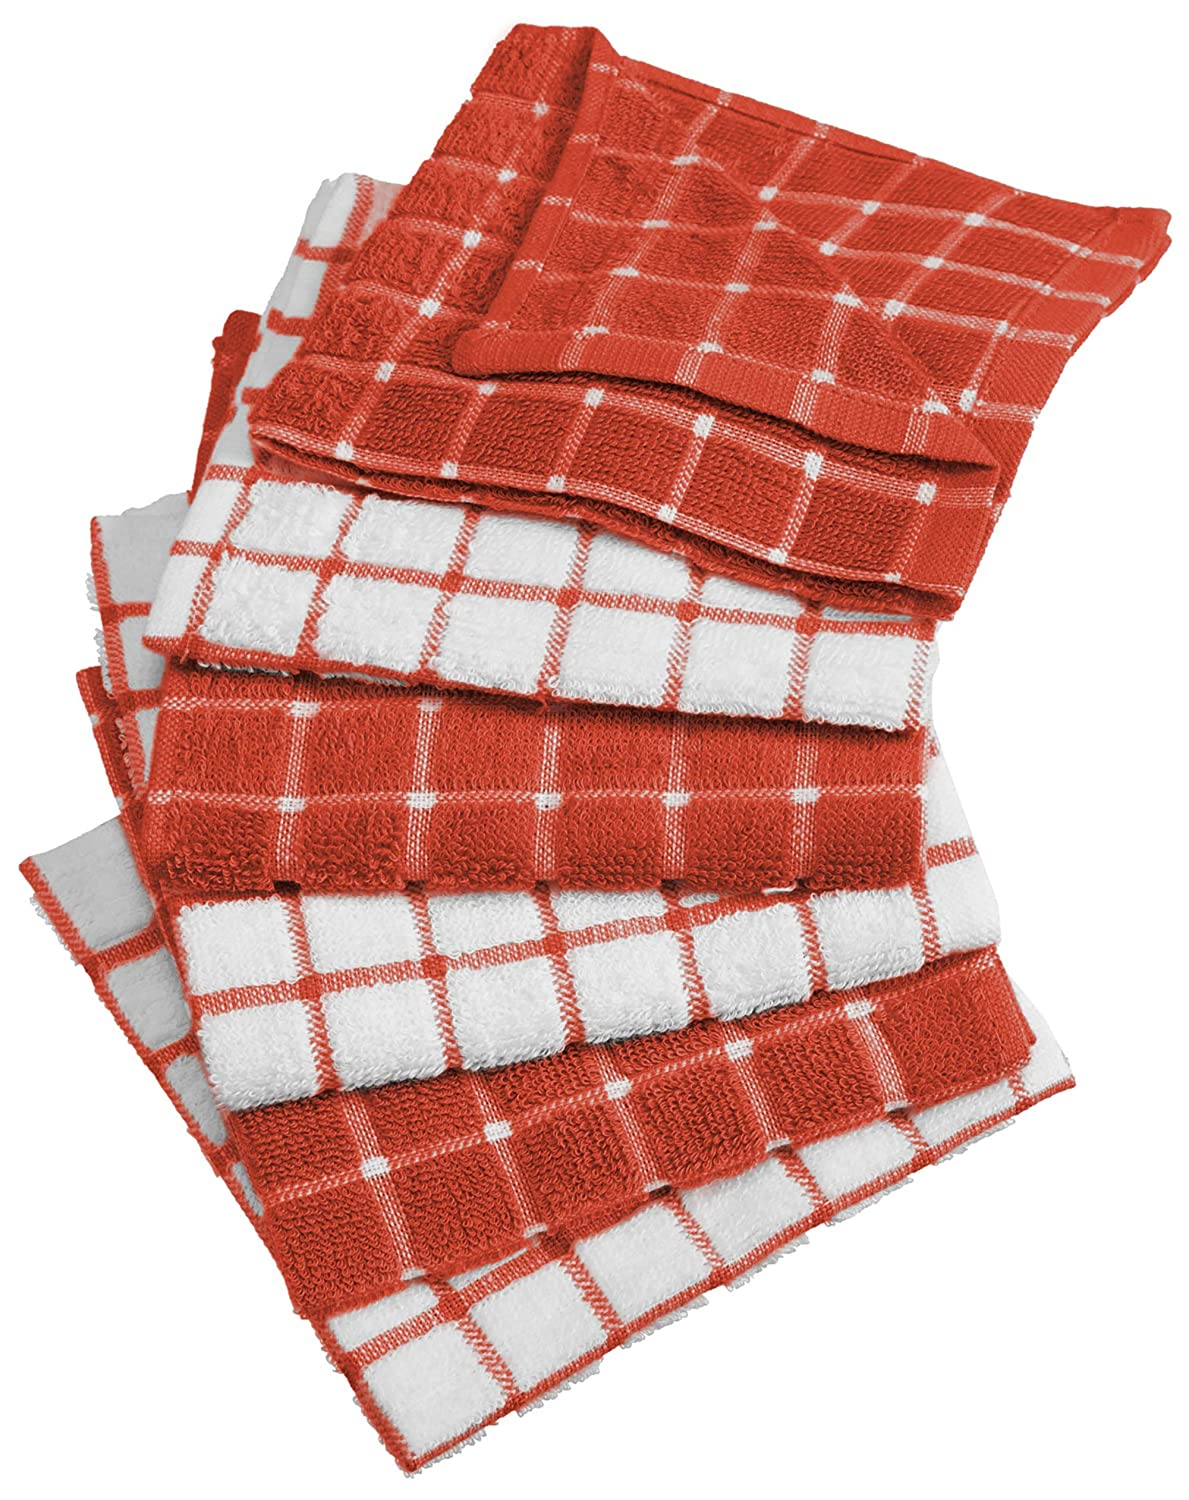 DII Cotton Terry Windowpane Dish Cloths, 12 x 12 Set of 6, Machine Washable Ultra Absorbent Kitchen Dishcloth-Spice